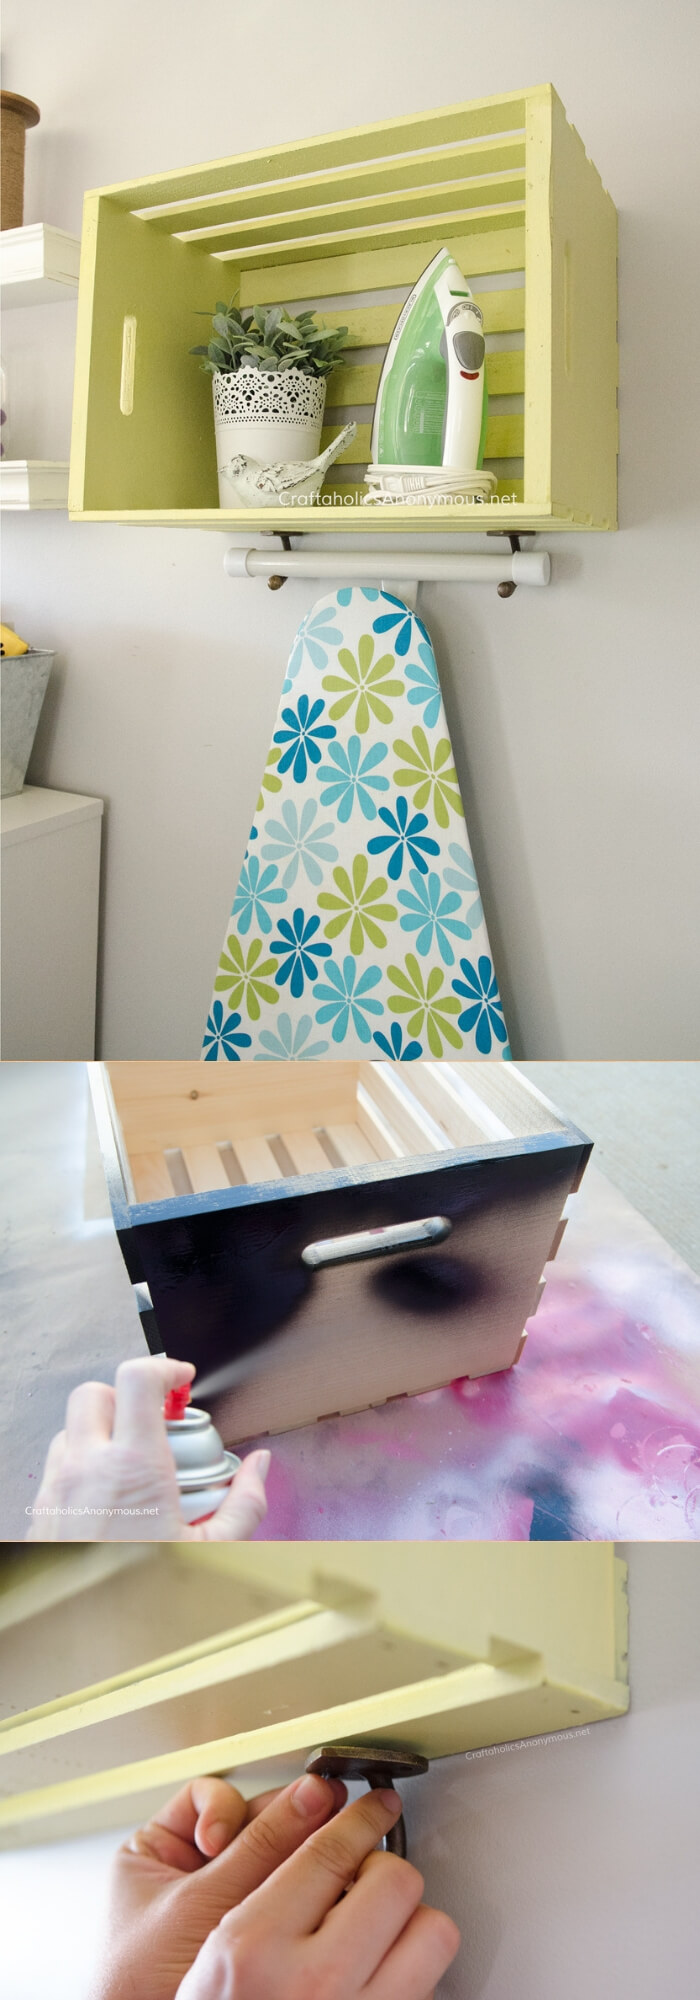 DIY Ironing Station | Best DIY Wood Crate Projects & Ideas